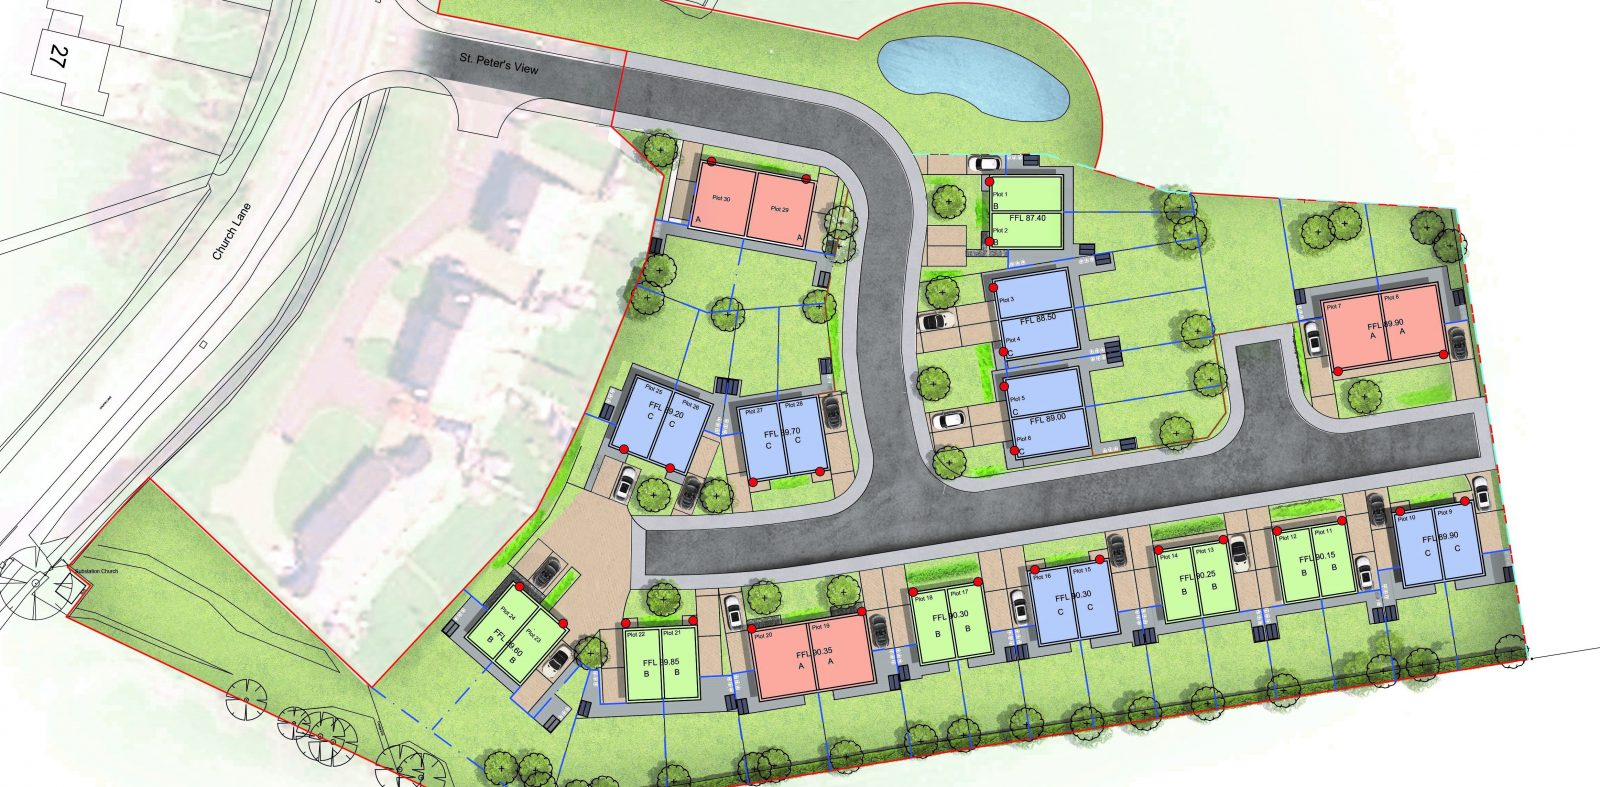 St Peters View Site Plan